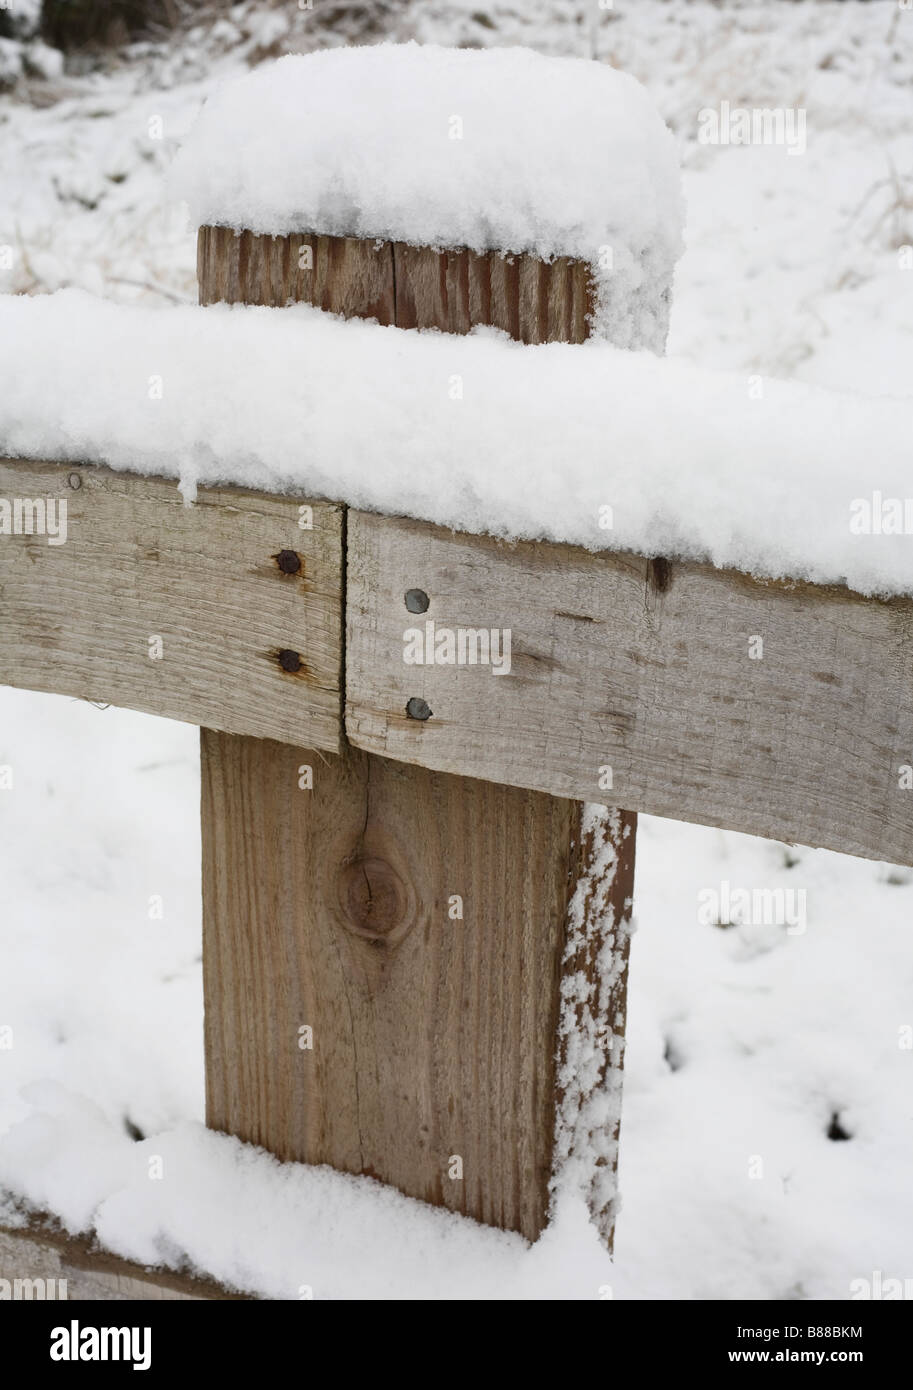 a wooden fencepost with snow settled on it after rare snowfall on the coast of South Wales - Stock Image